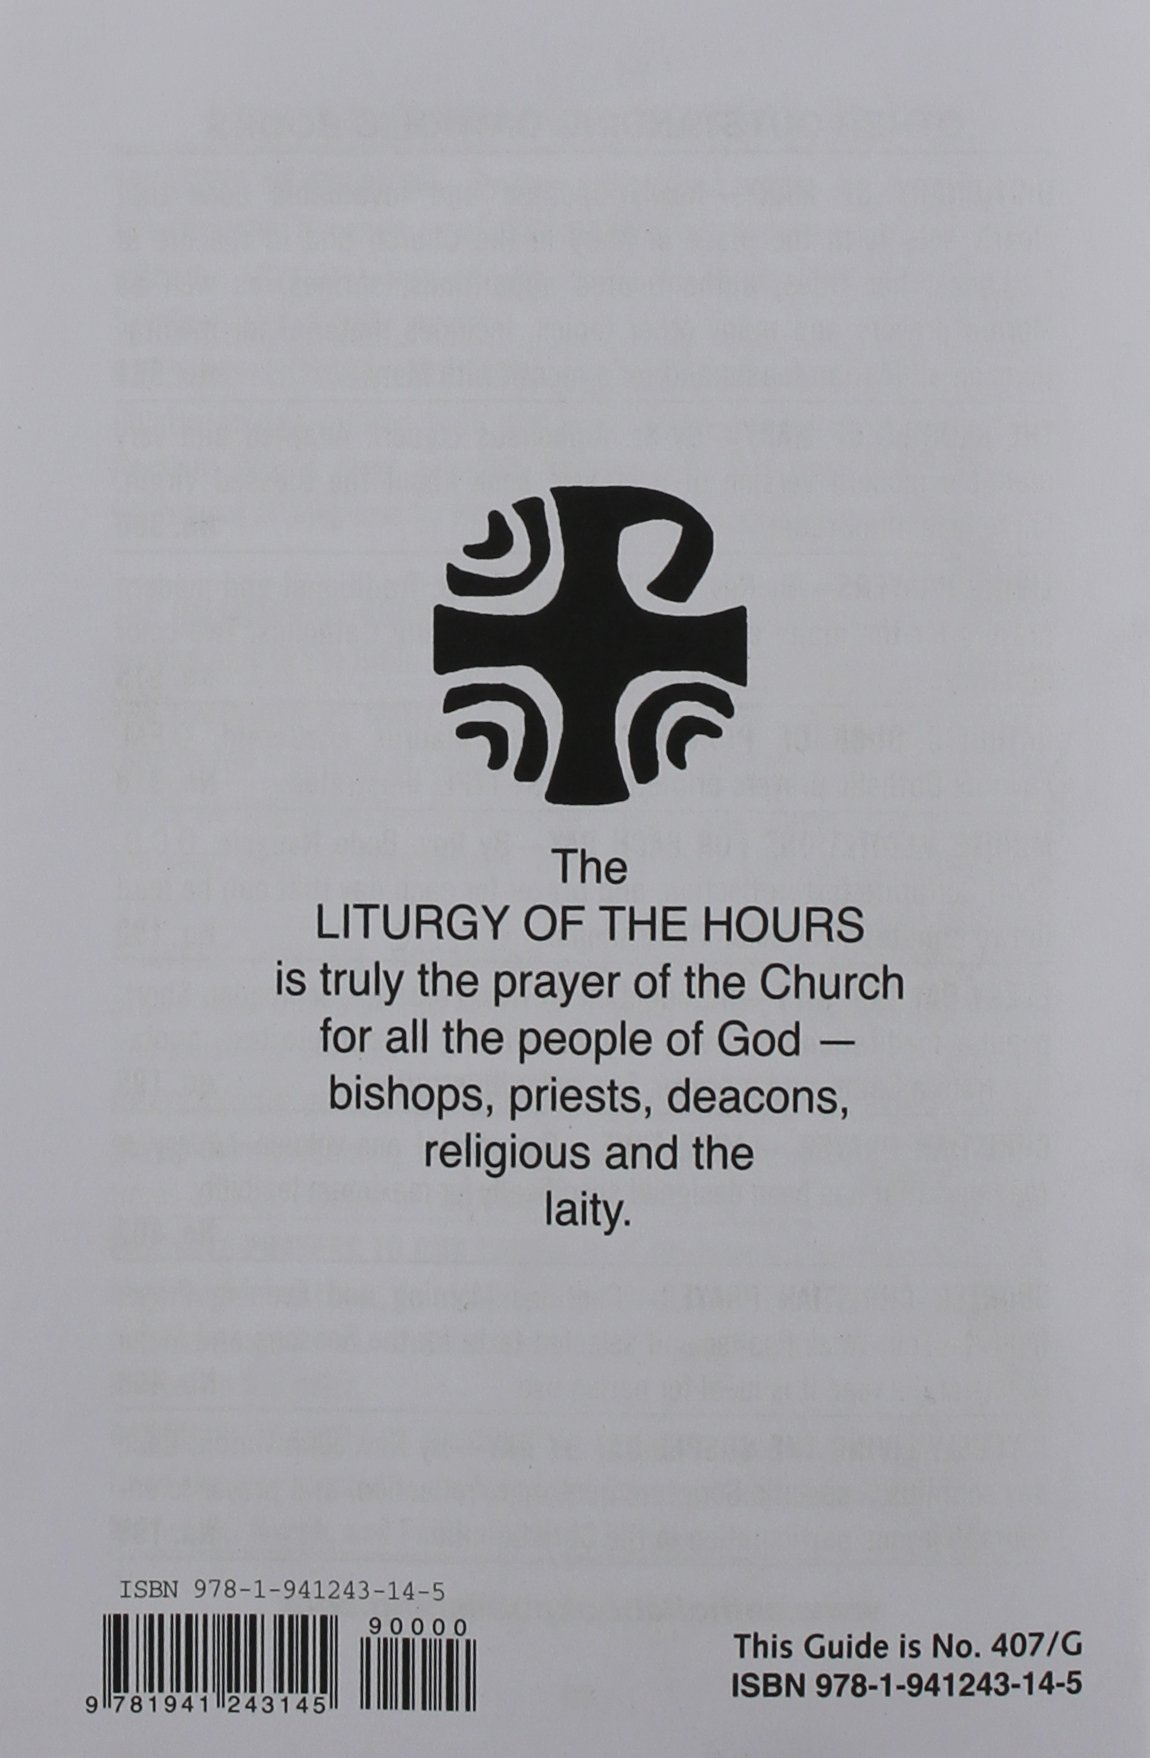 Saint Joseph Guide for Christian Prayer: The Liturgy of the Hours, for Use  with Edition No. 407: Catholic Book Publishing Corp: 9781941243145:  Amazon.com: ...